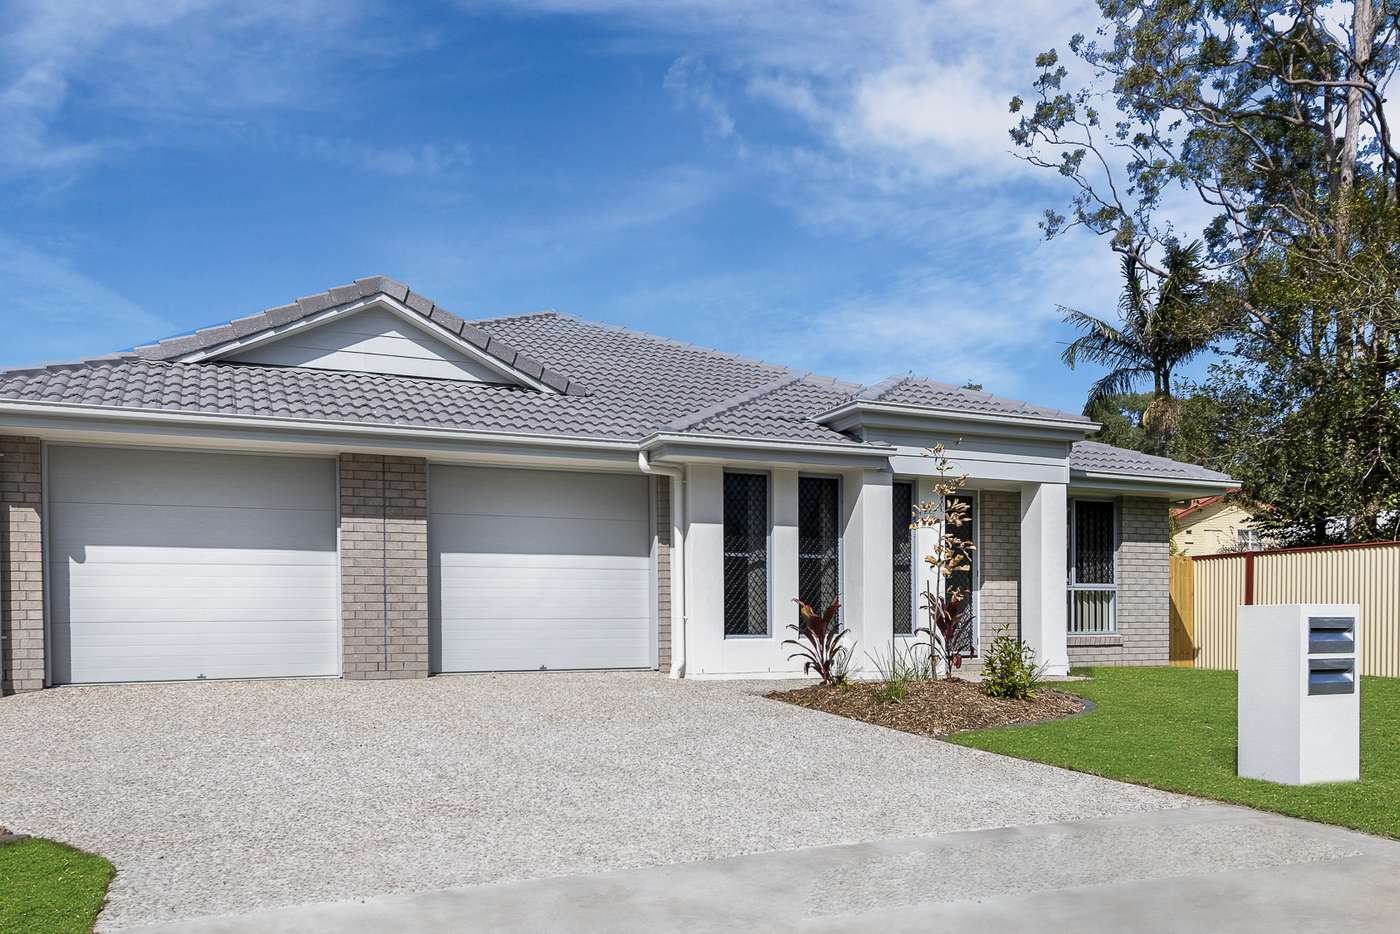 Main view of Homely house listing, 55 Blue-Gum Dr, Marsden QLD 4132